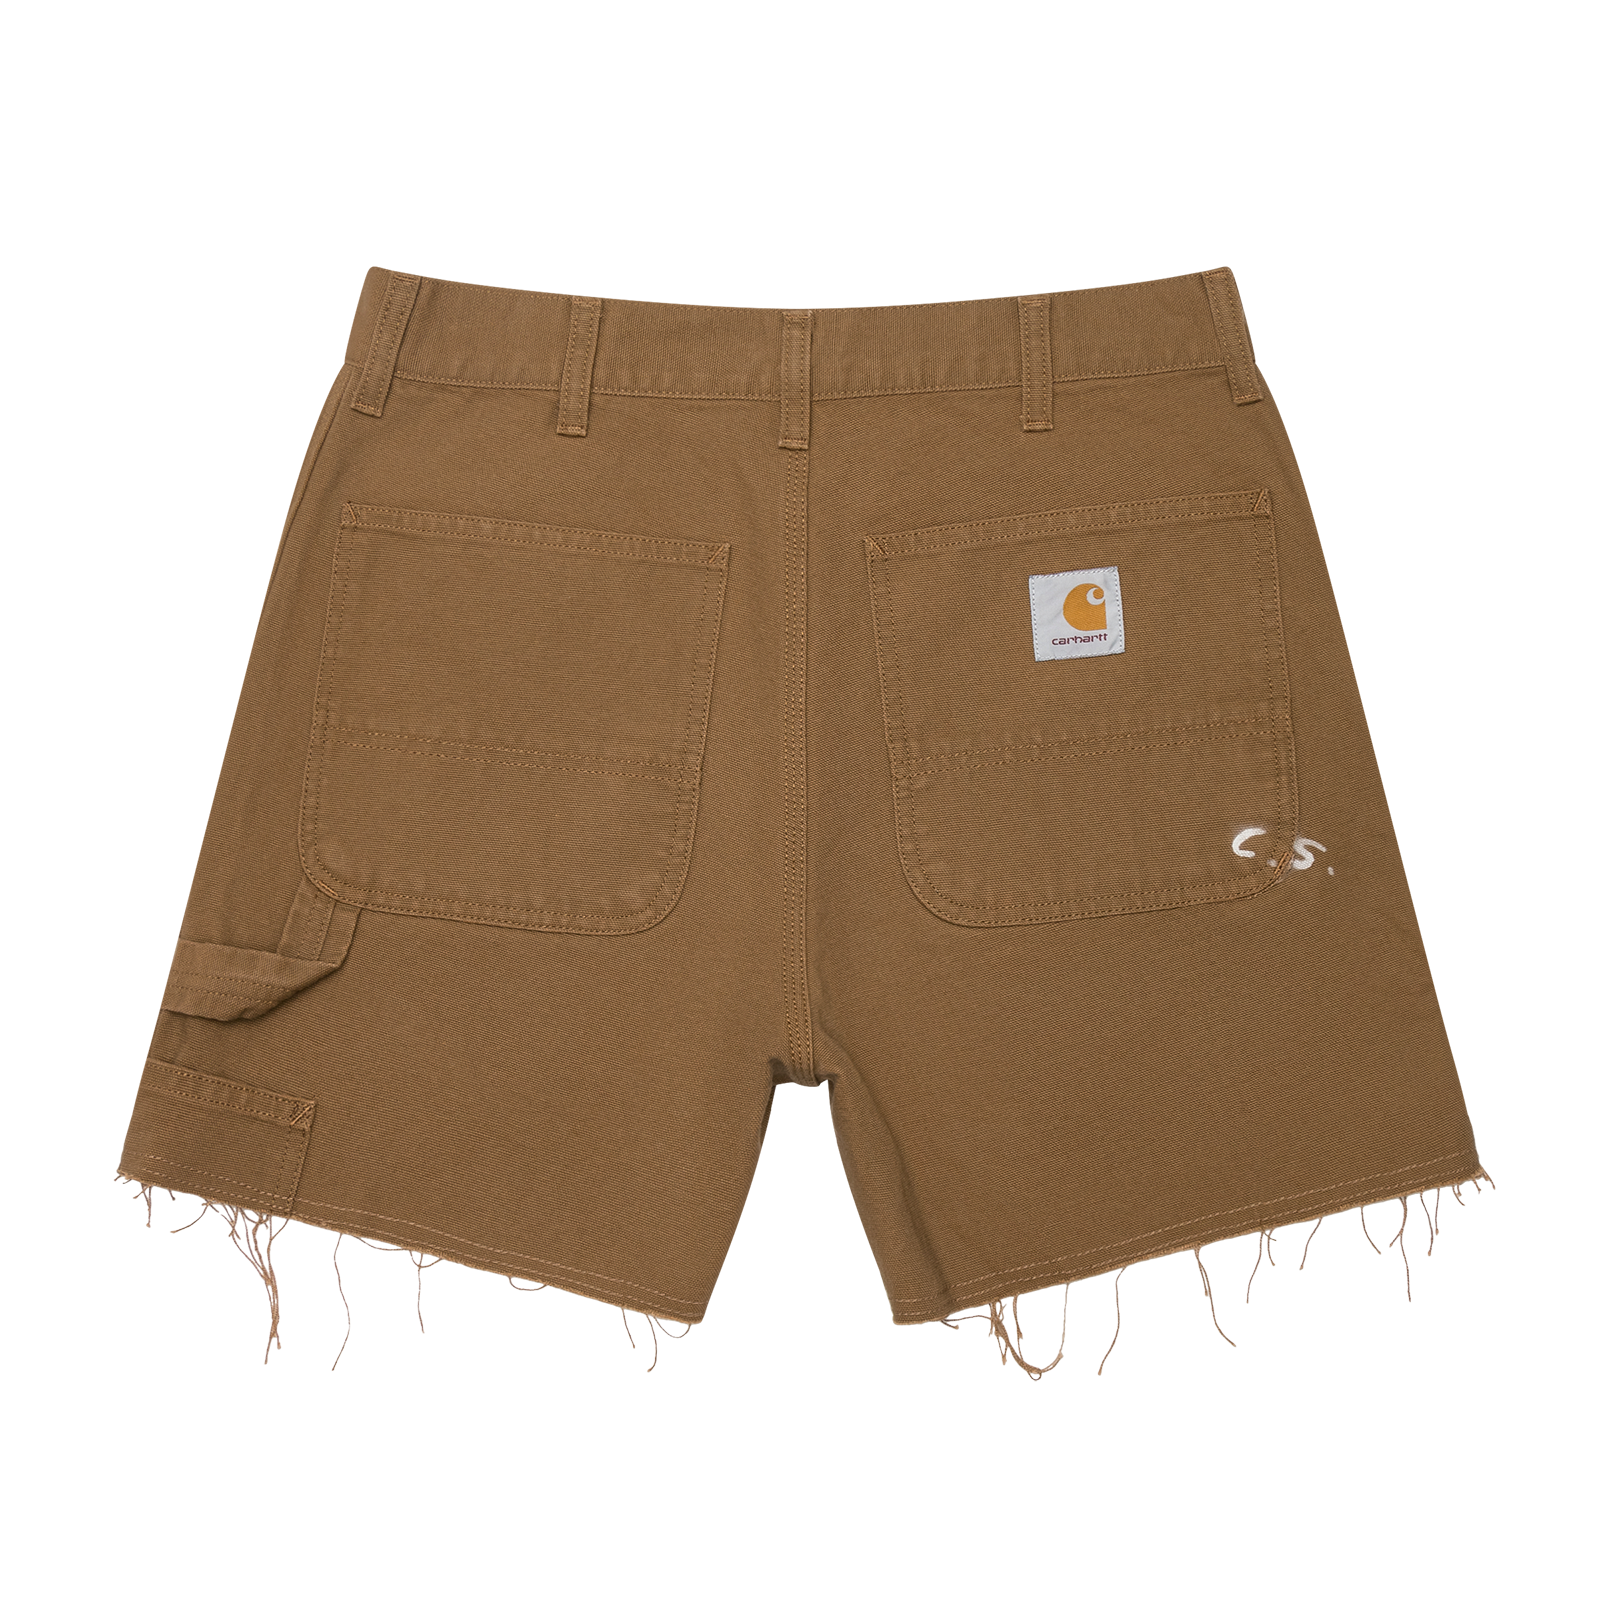 Flat lay shorts product image